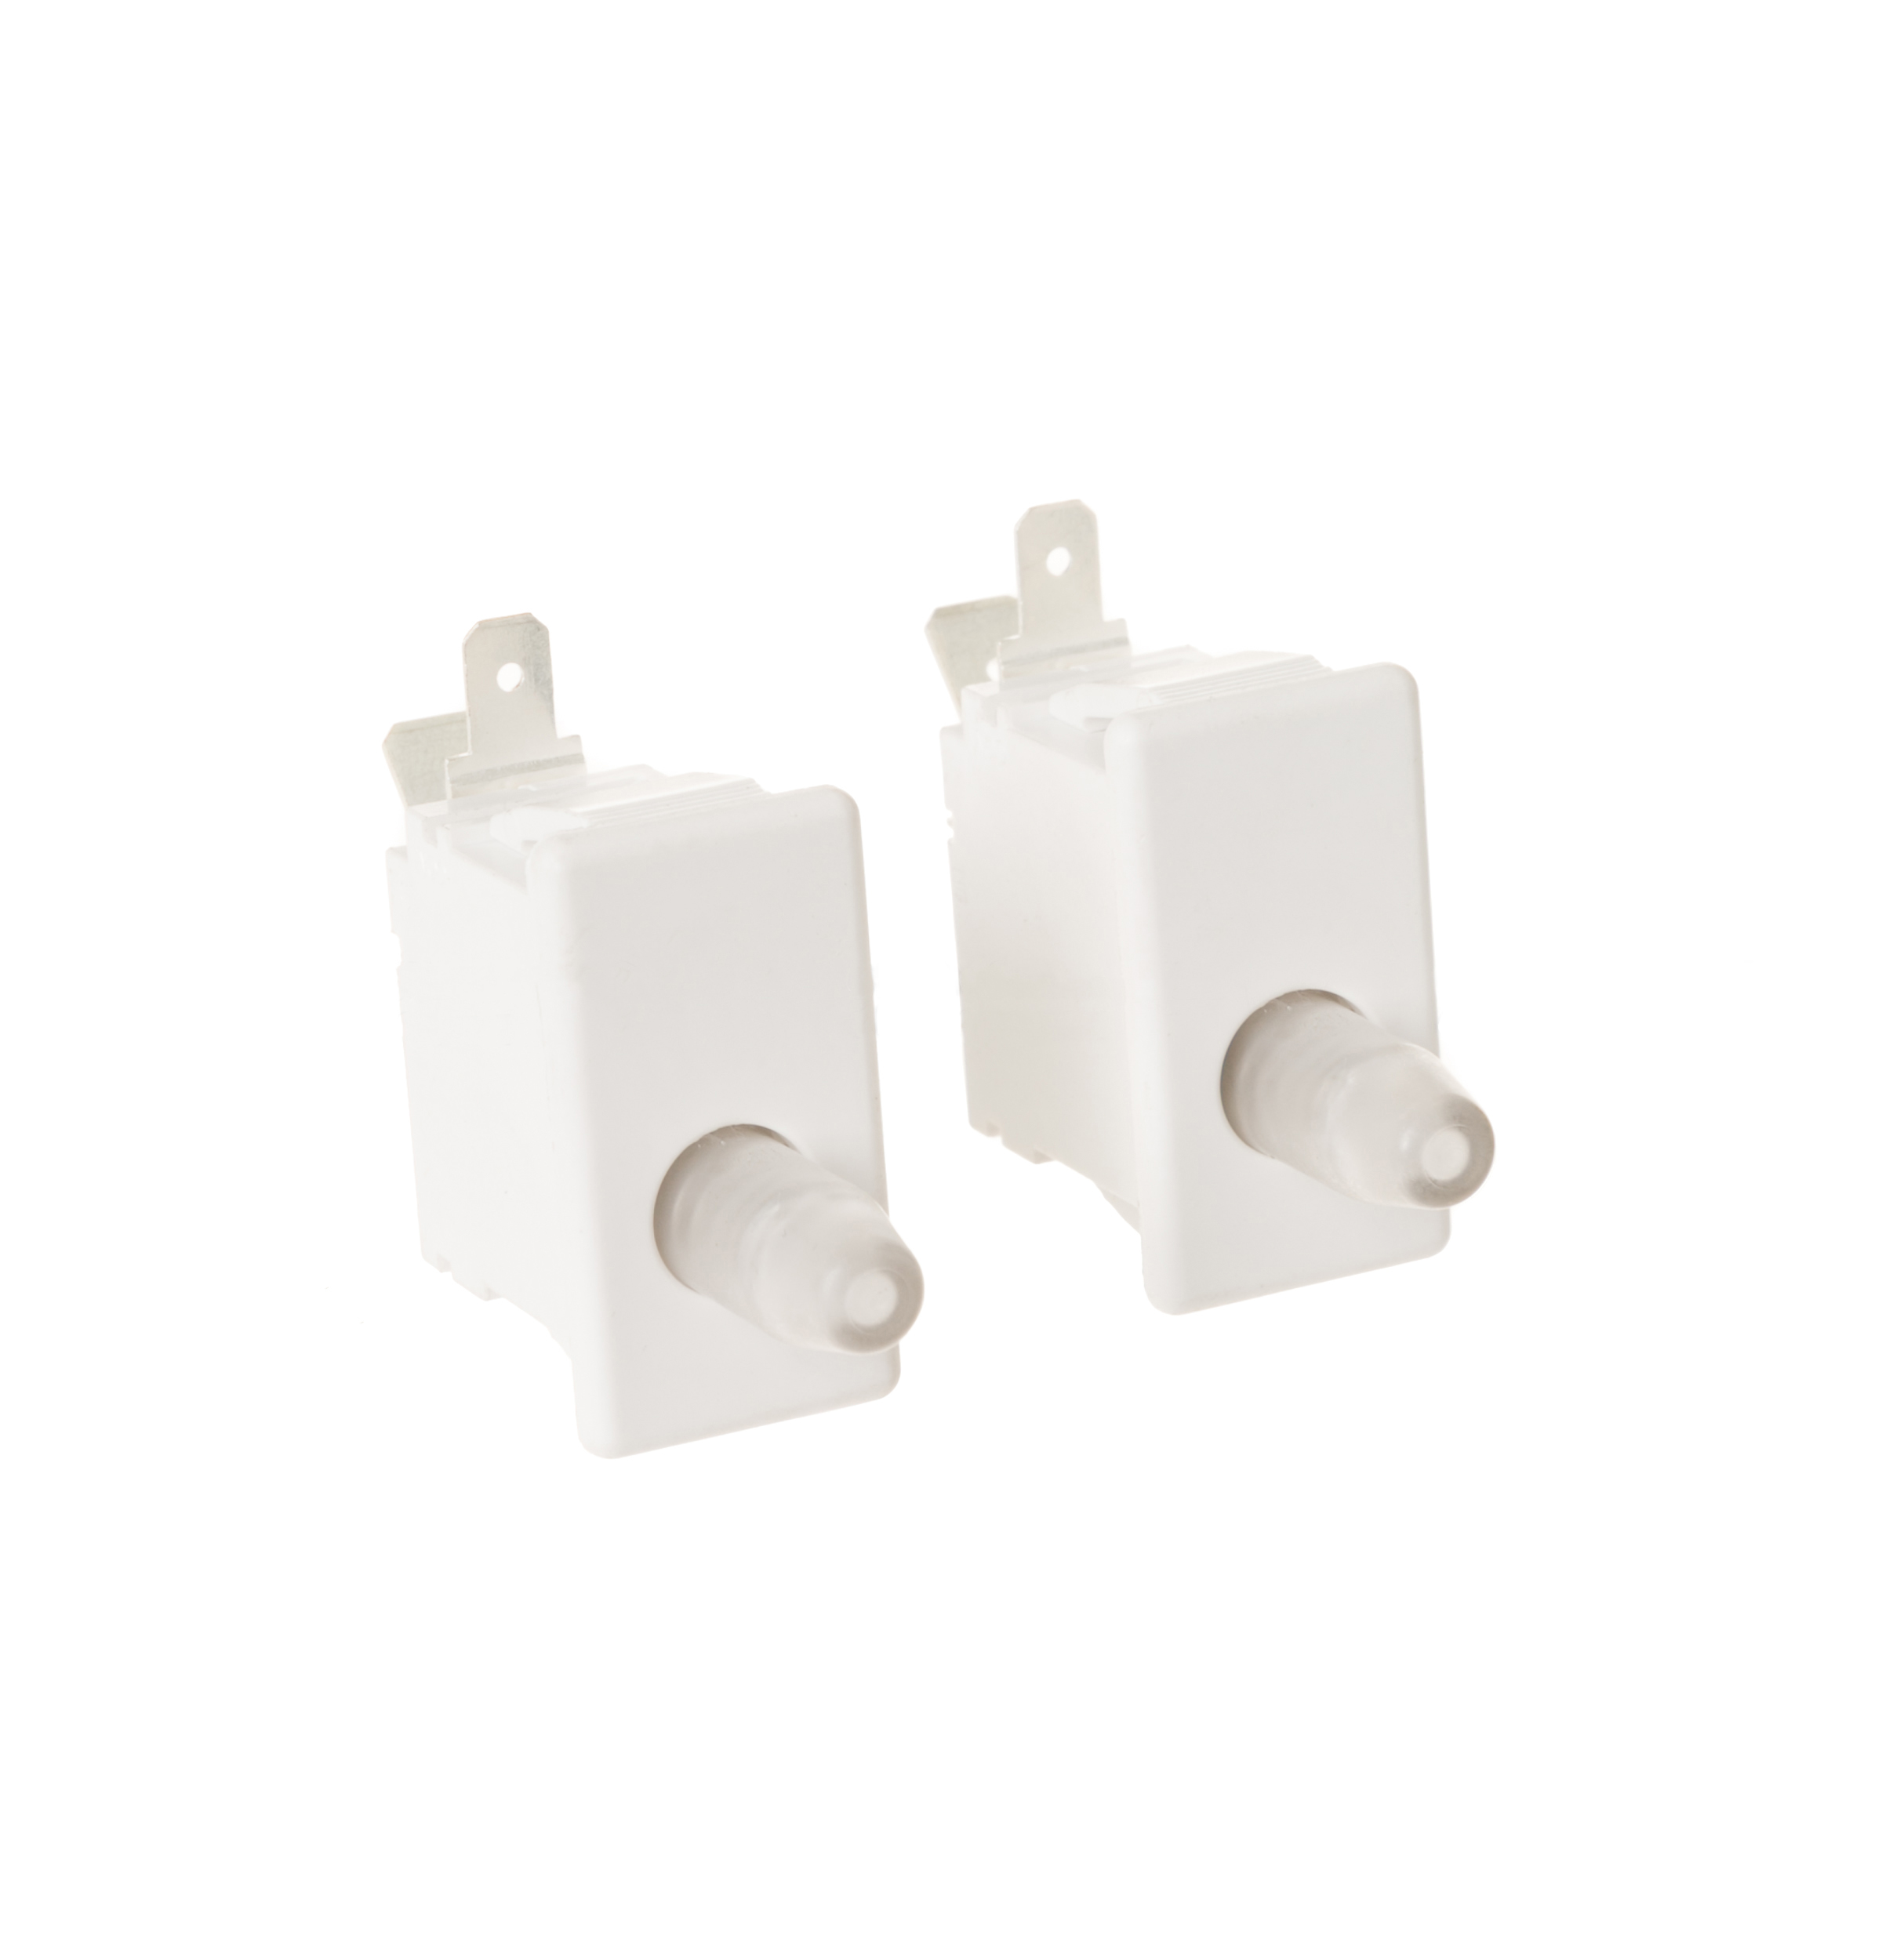 Ge Xfe26jsmkfss Door Light Switch  2 Pack